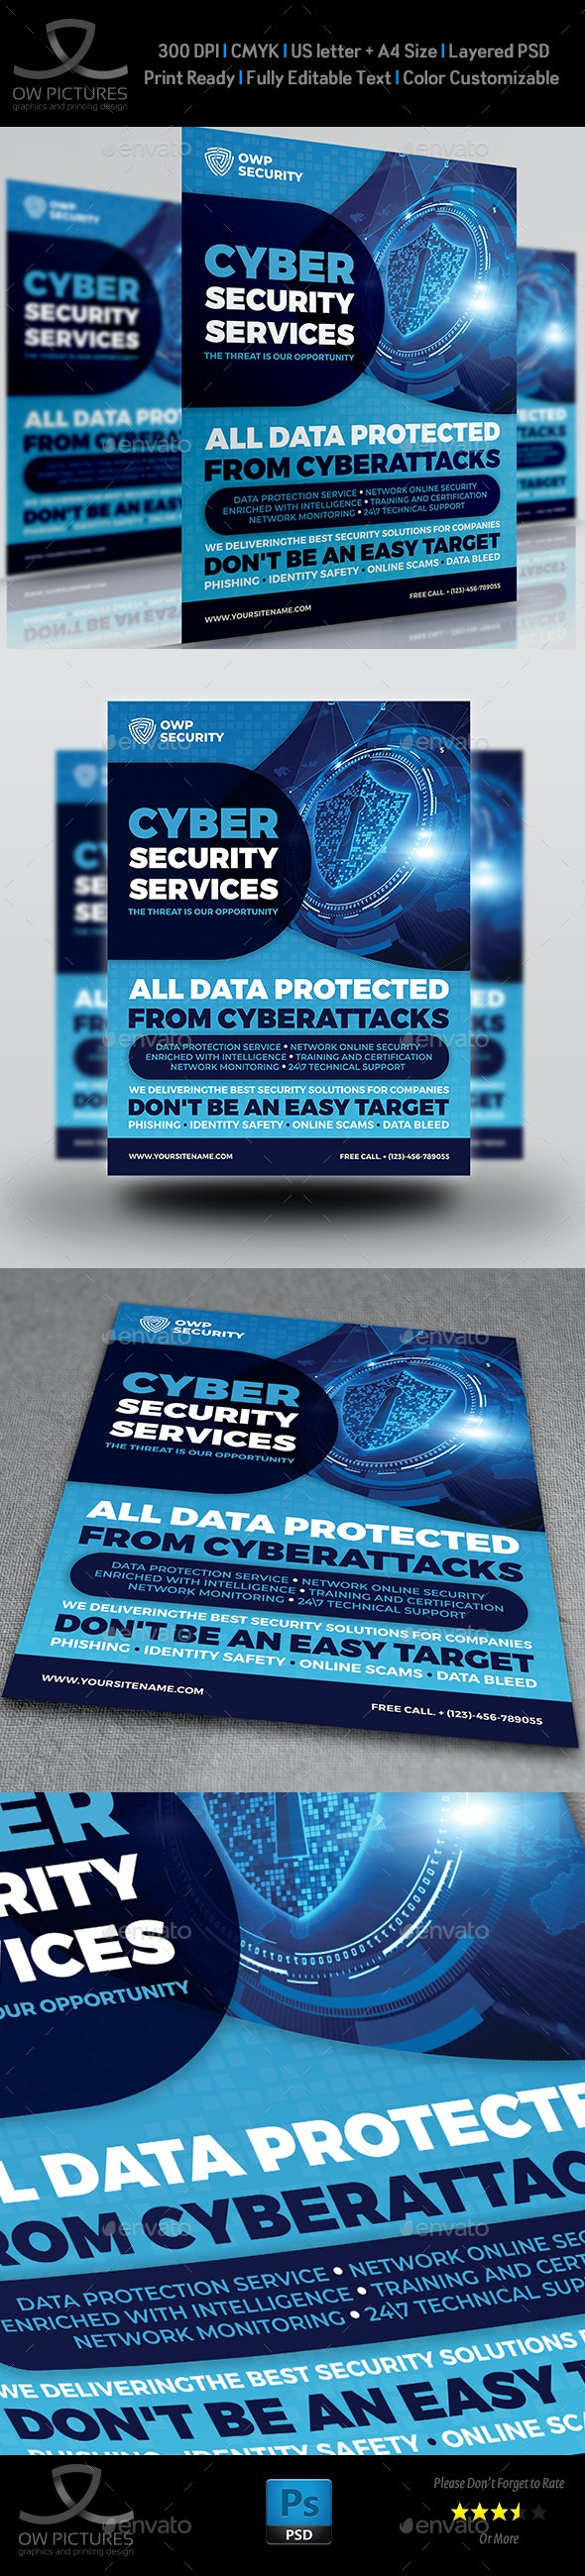 Cyber Security Services Flyer Template - Flyers Print Templates